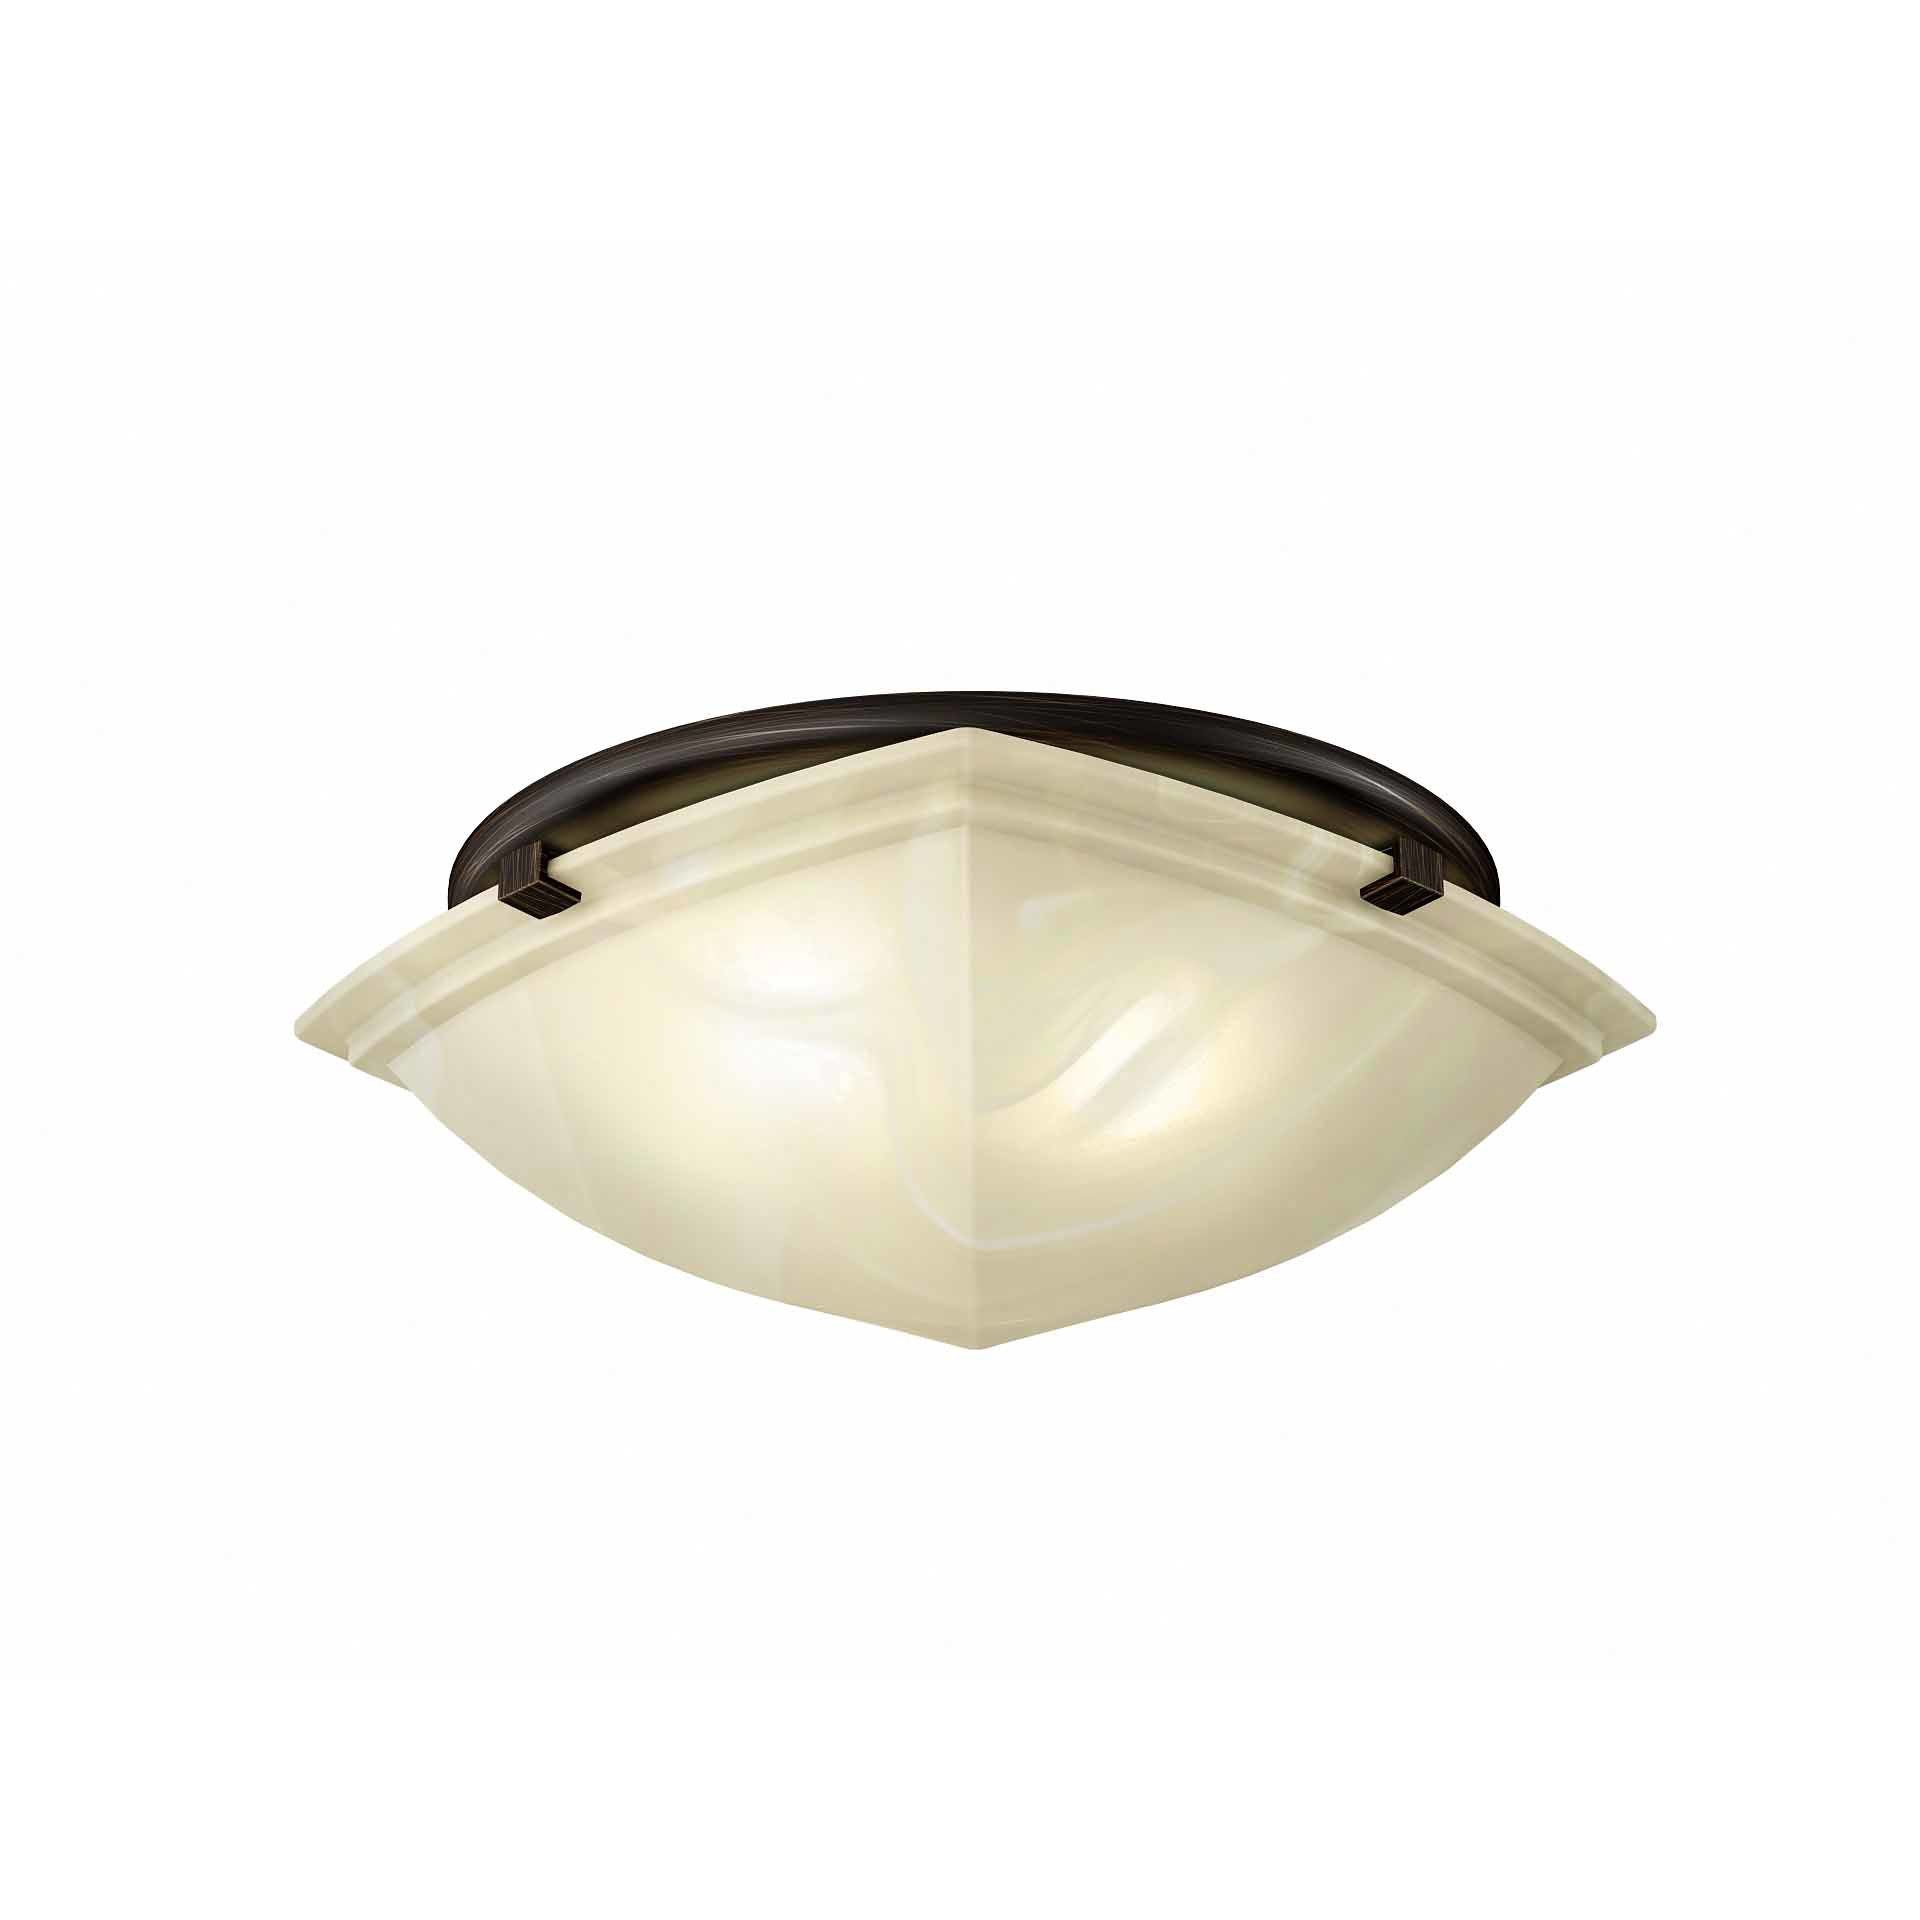 Broan Bathroom Fan | Broan Bathroom Fan with Light | Lowes Bathroom Exhaust Fan